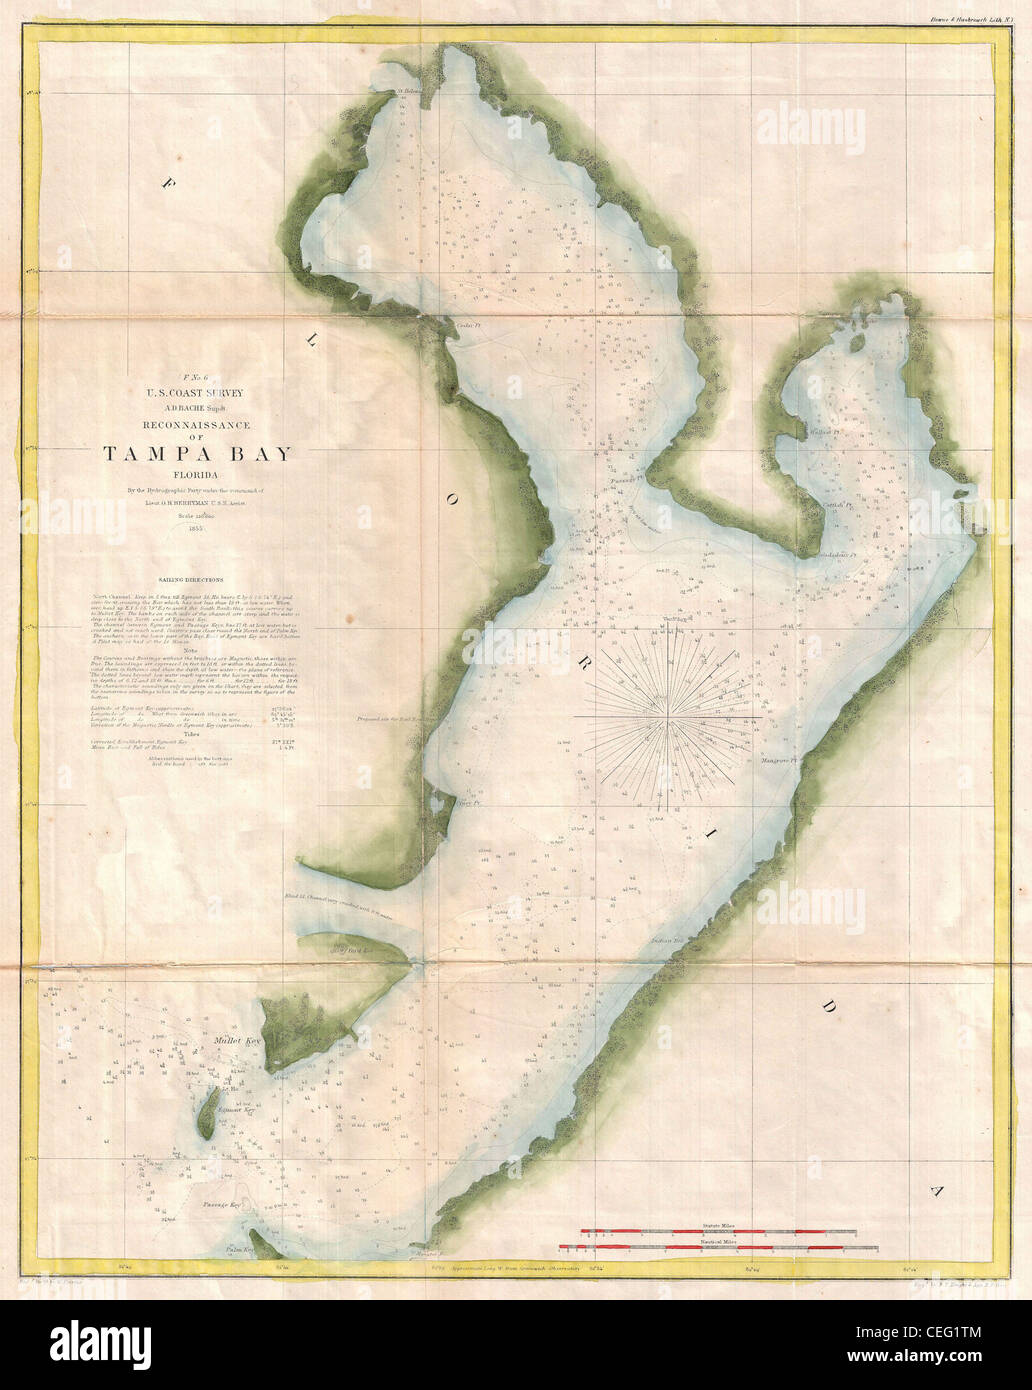 US Coast Survey Chart Or Map Of Tampa Bay Florida Stock - Where is tampa on map of us